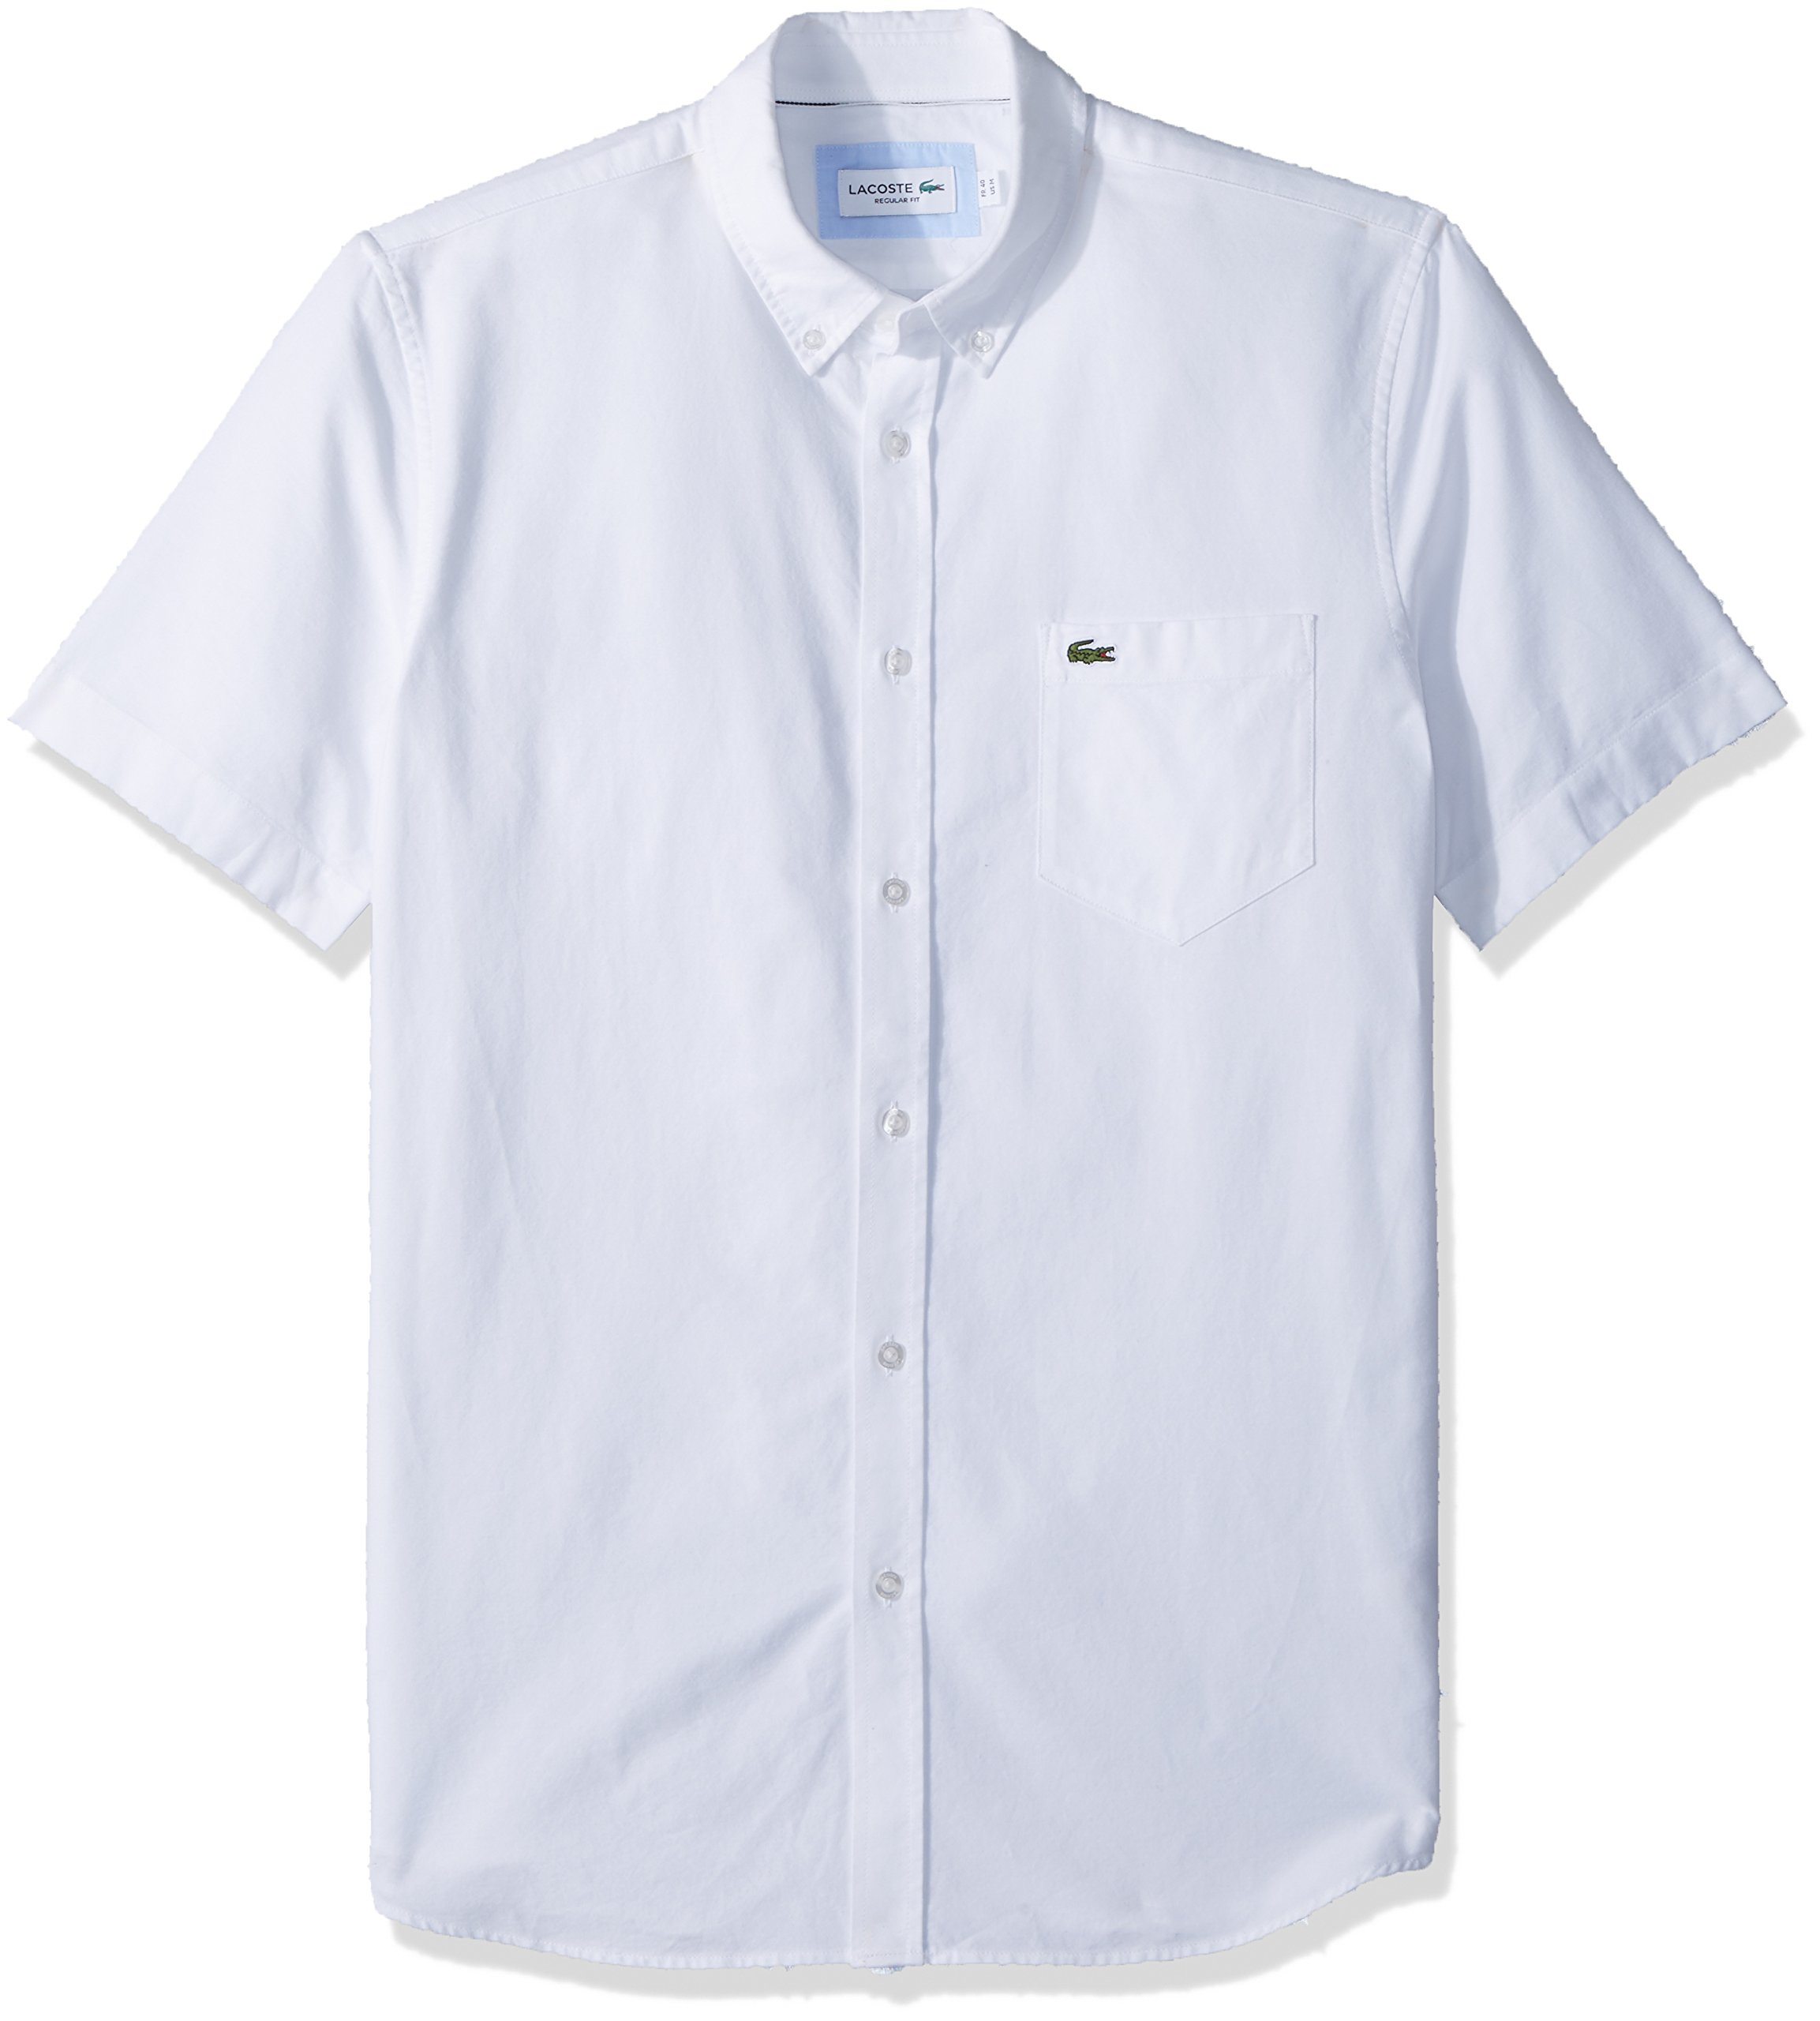 441fe34deaff50 Galleon - Lacoste Men's Short Sleeve Oxford Button Down Collar Regular Fit  Woven Shirt, CH4975, White, X-Large/XX-Large